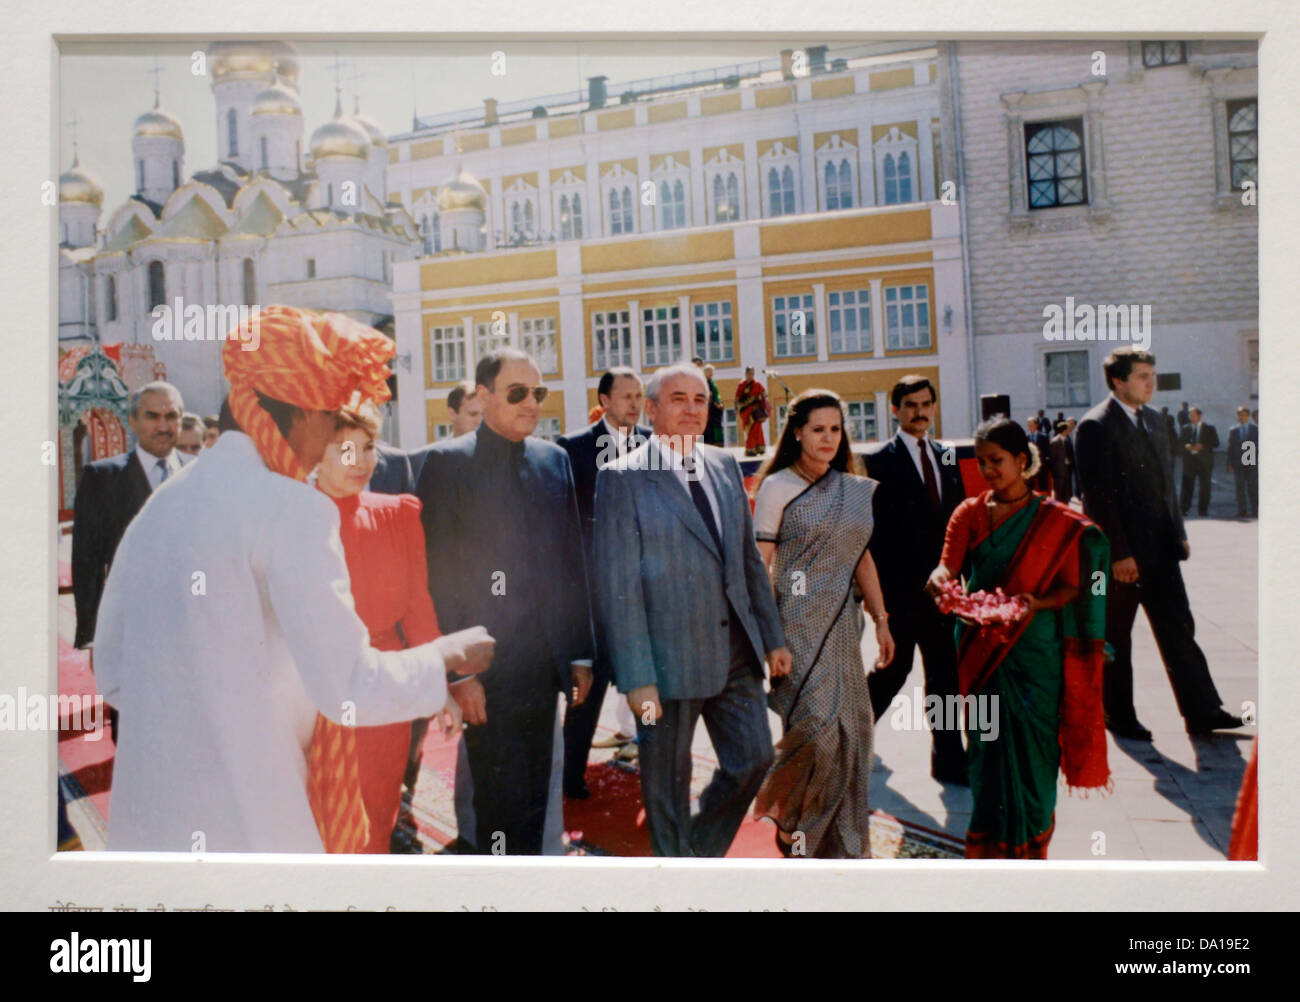 Rajiv Gandhi with CPSU Gen secretary Mikhail S Gorbachev , Raisa Gorbachev and Sonia Gandhi, at Moscow, USSR, July - Stock Image